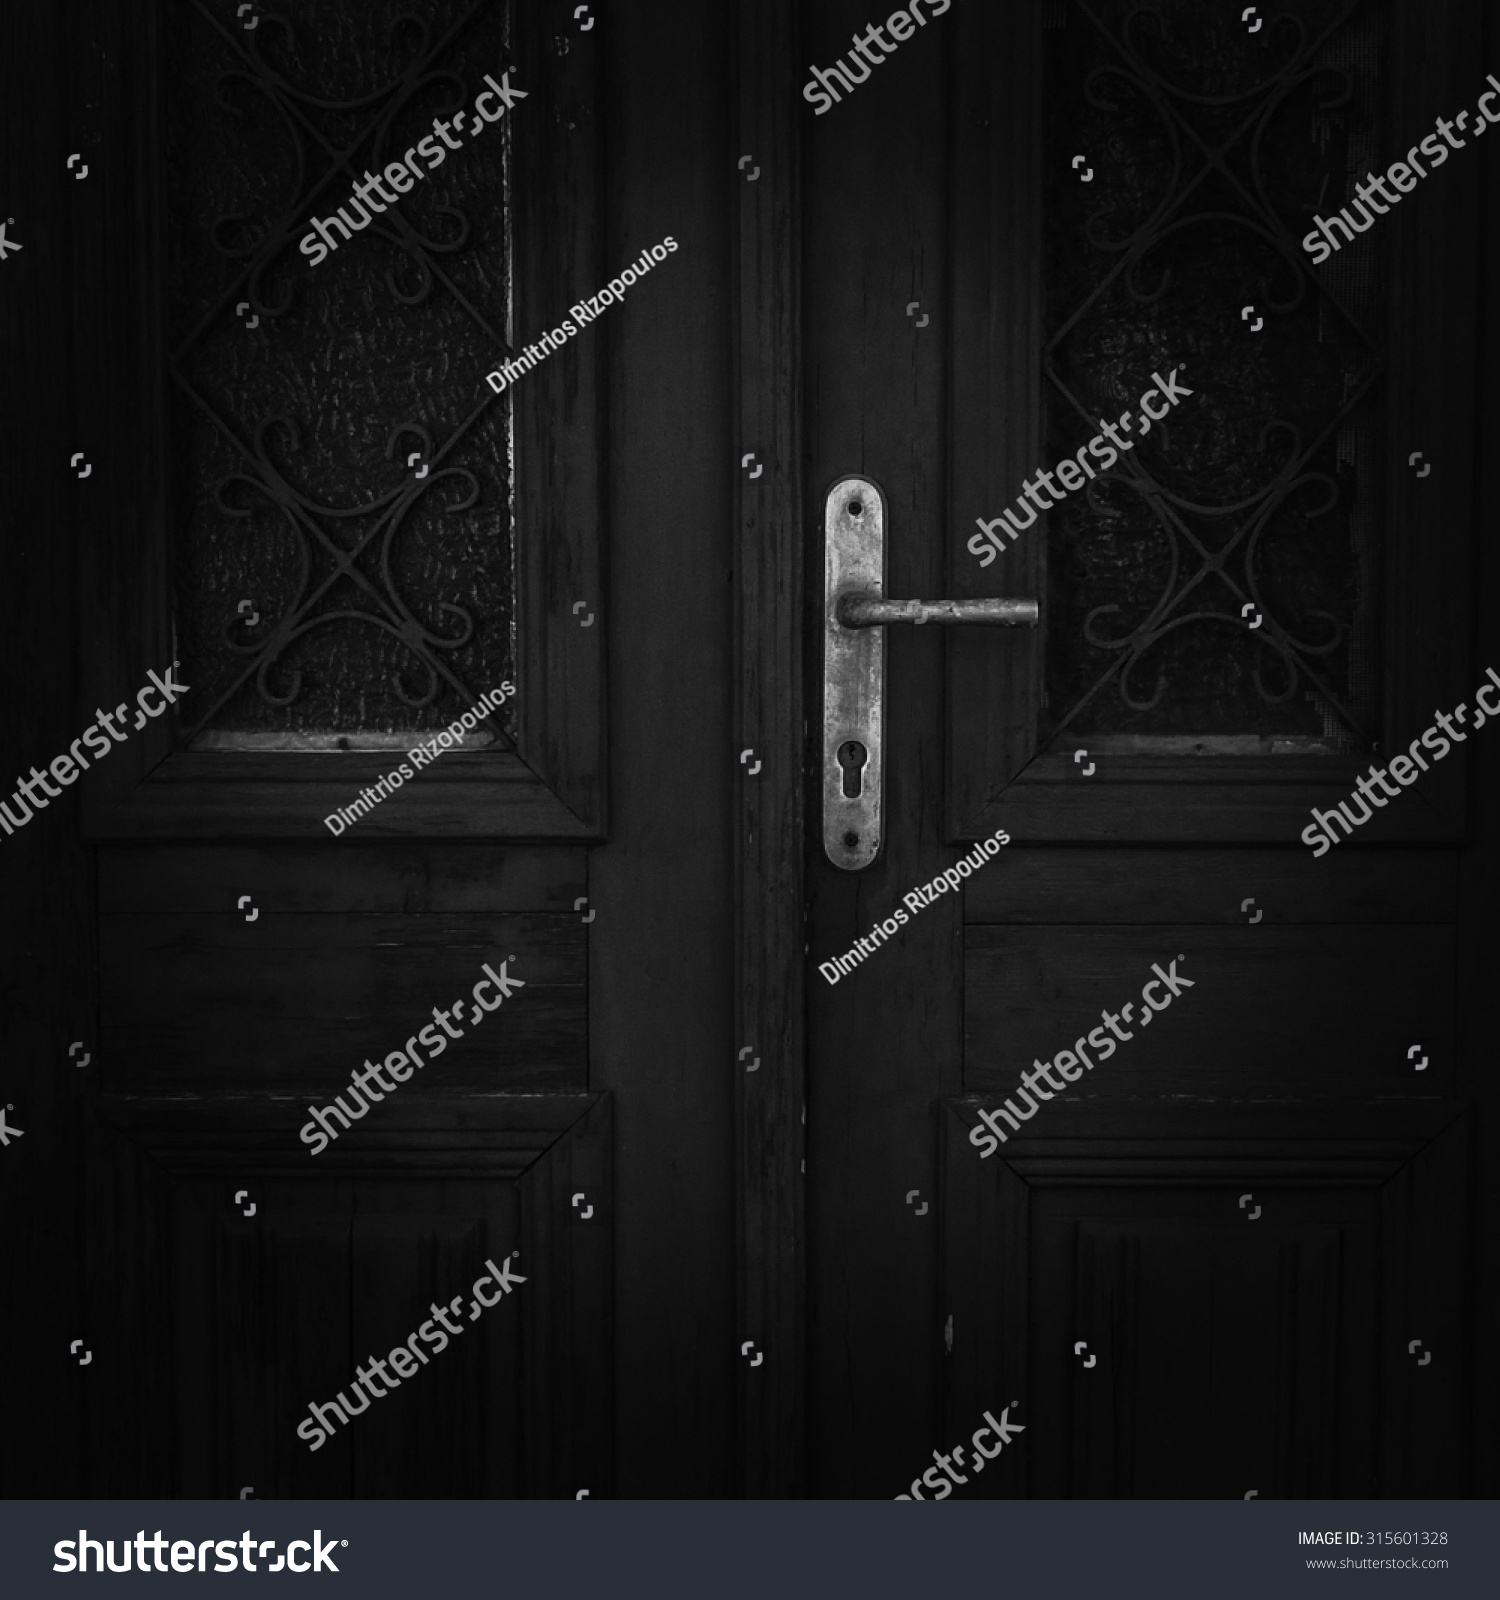 Dark Mystery door & Dark Mystery Door Stock Photo 315601328 - Shutterstock pezcame.com